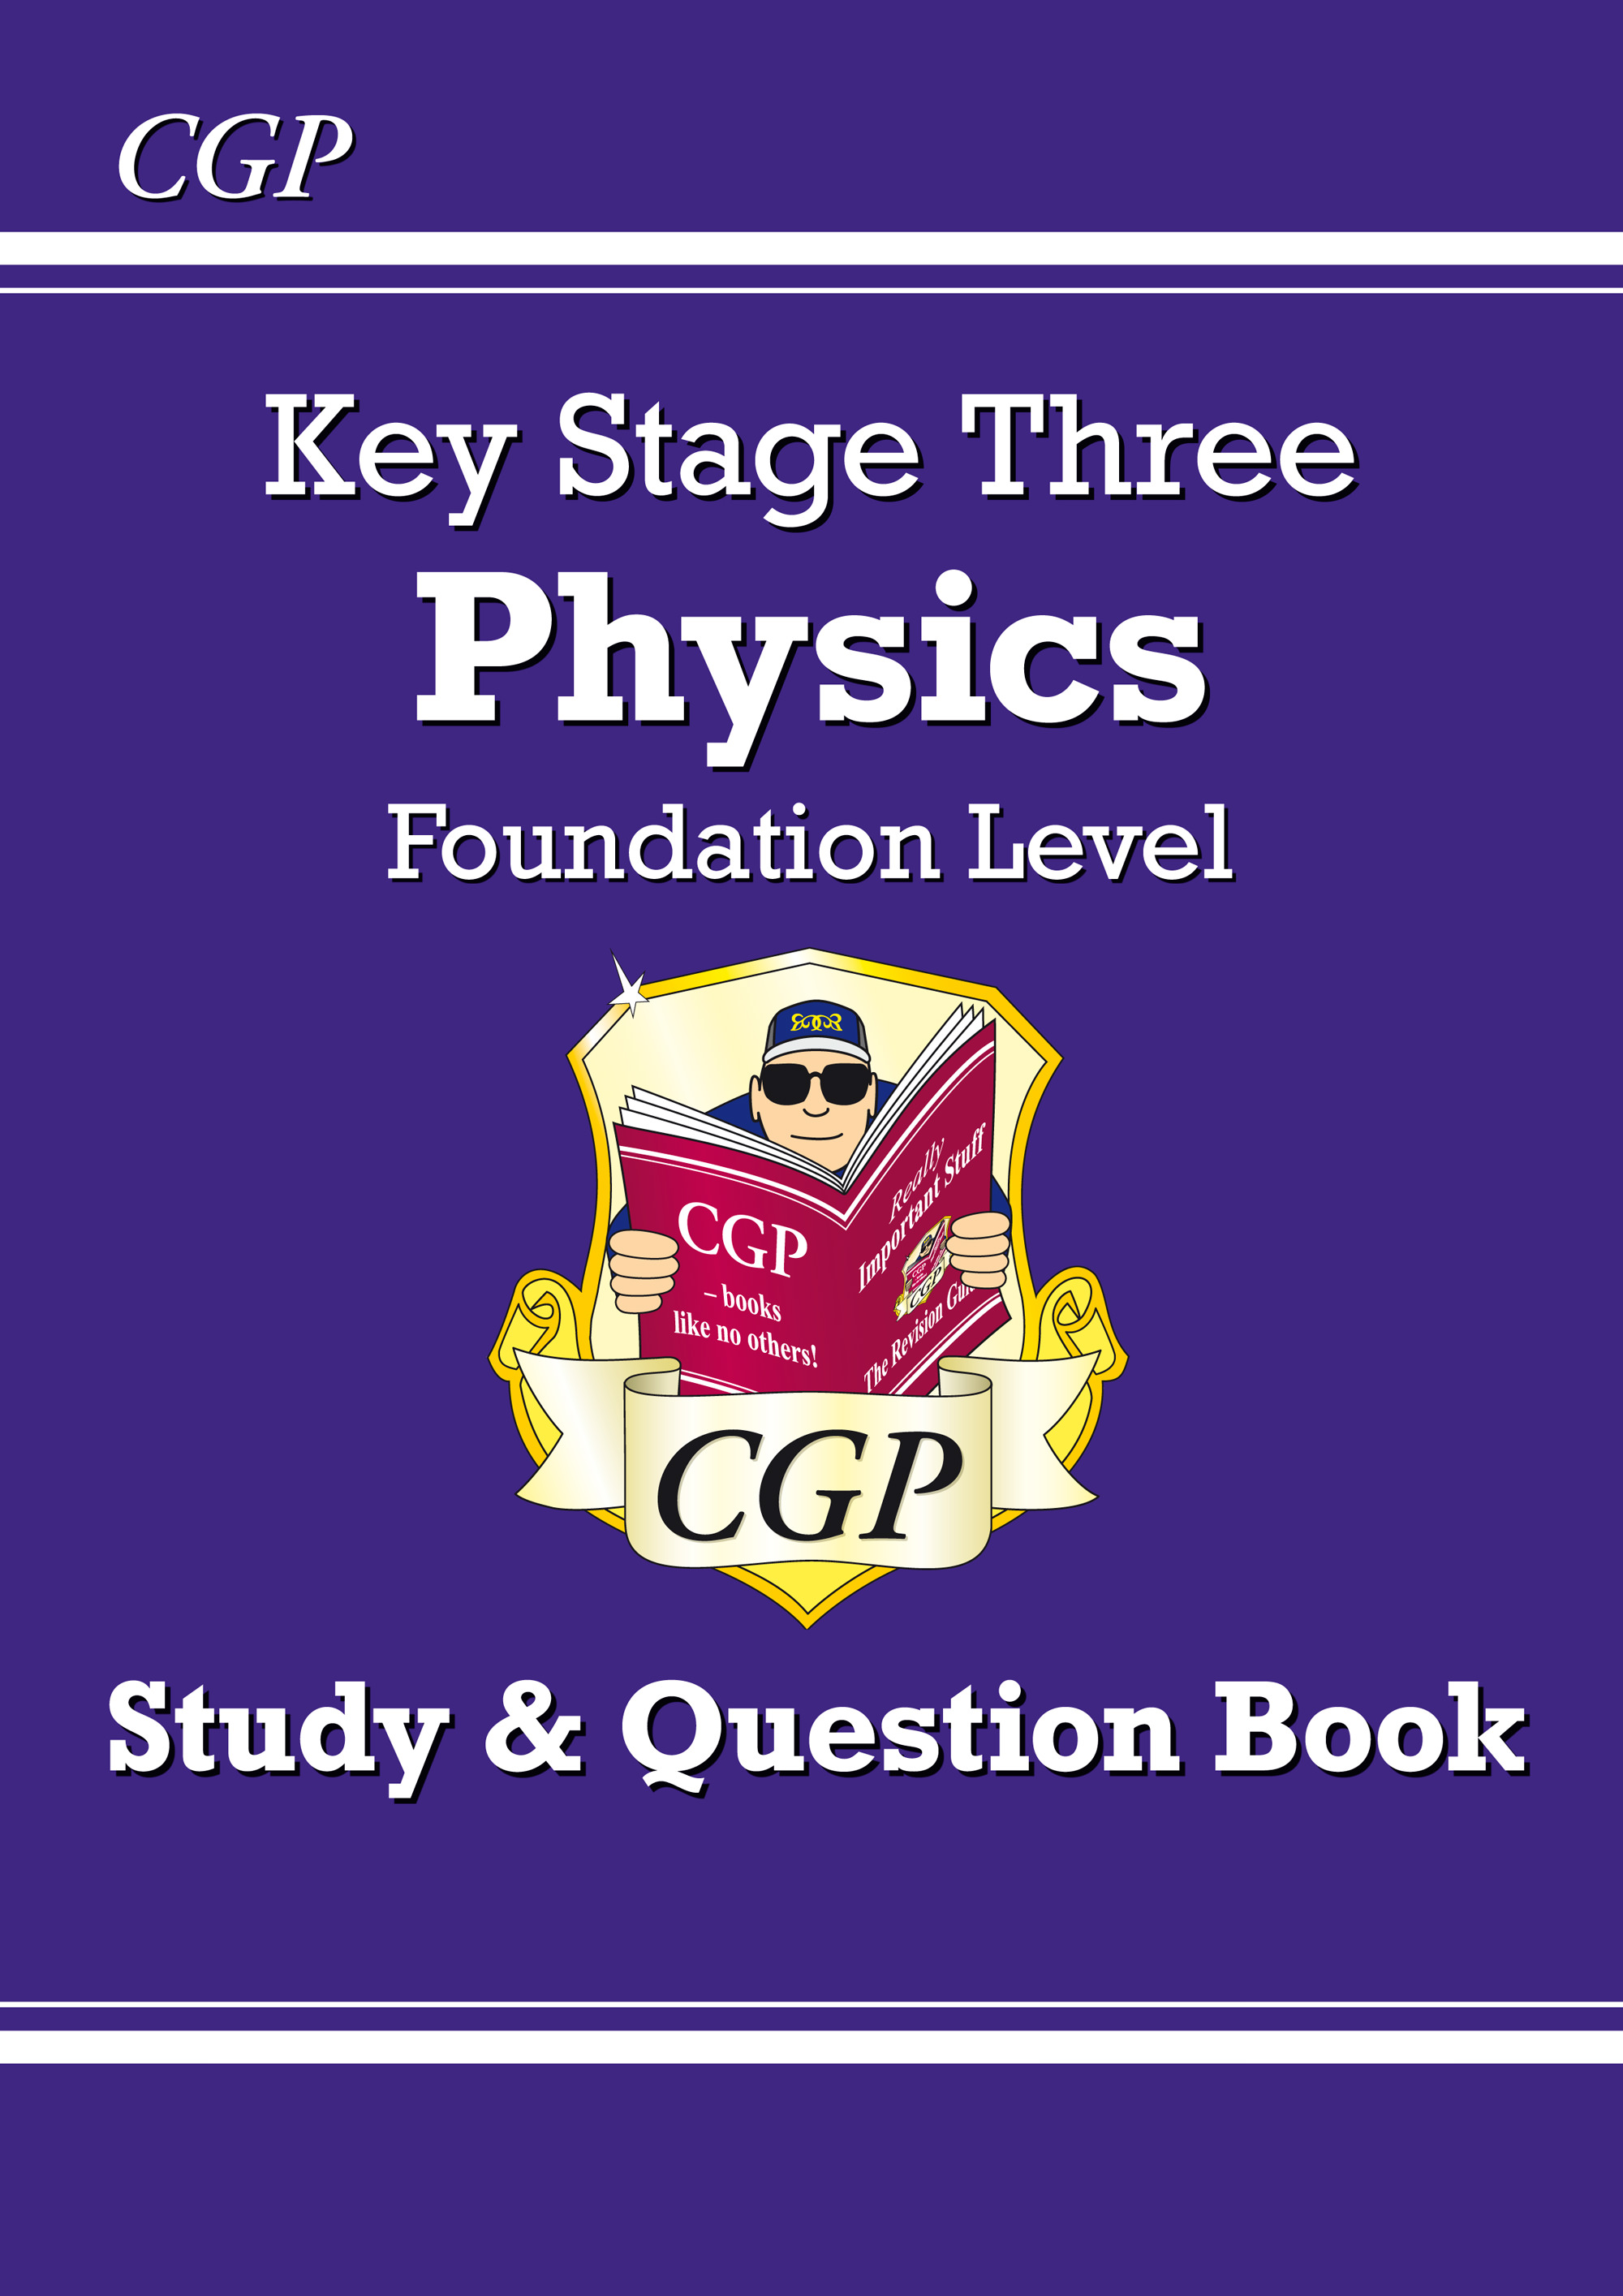 PFQ32 - KS3 Physics Study & Question Book - Foundation